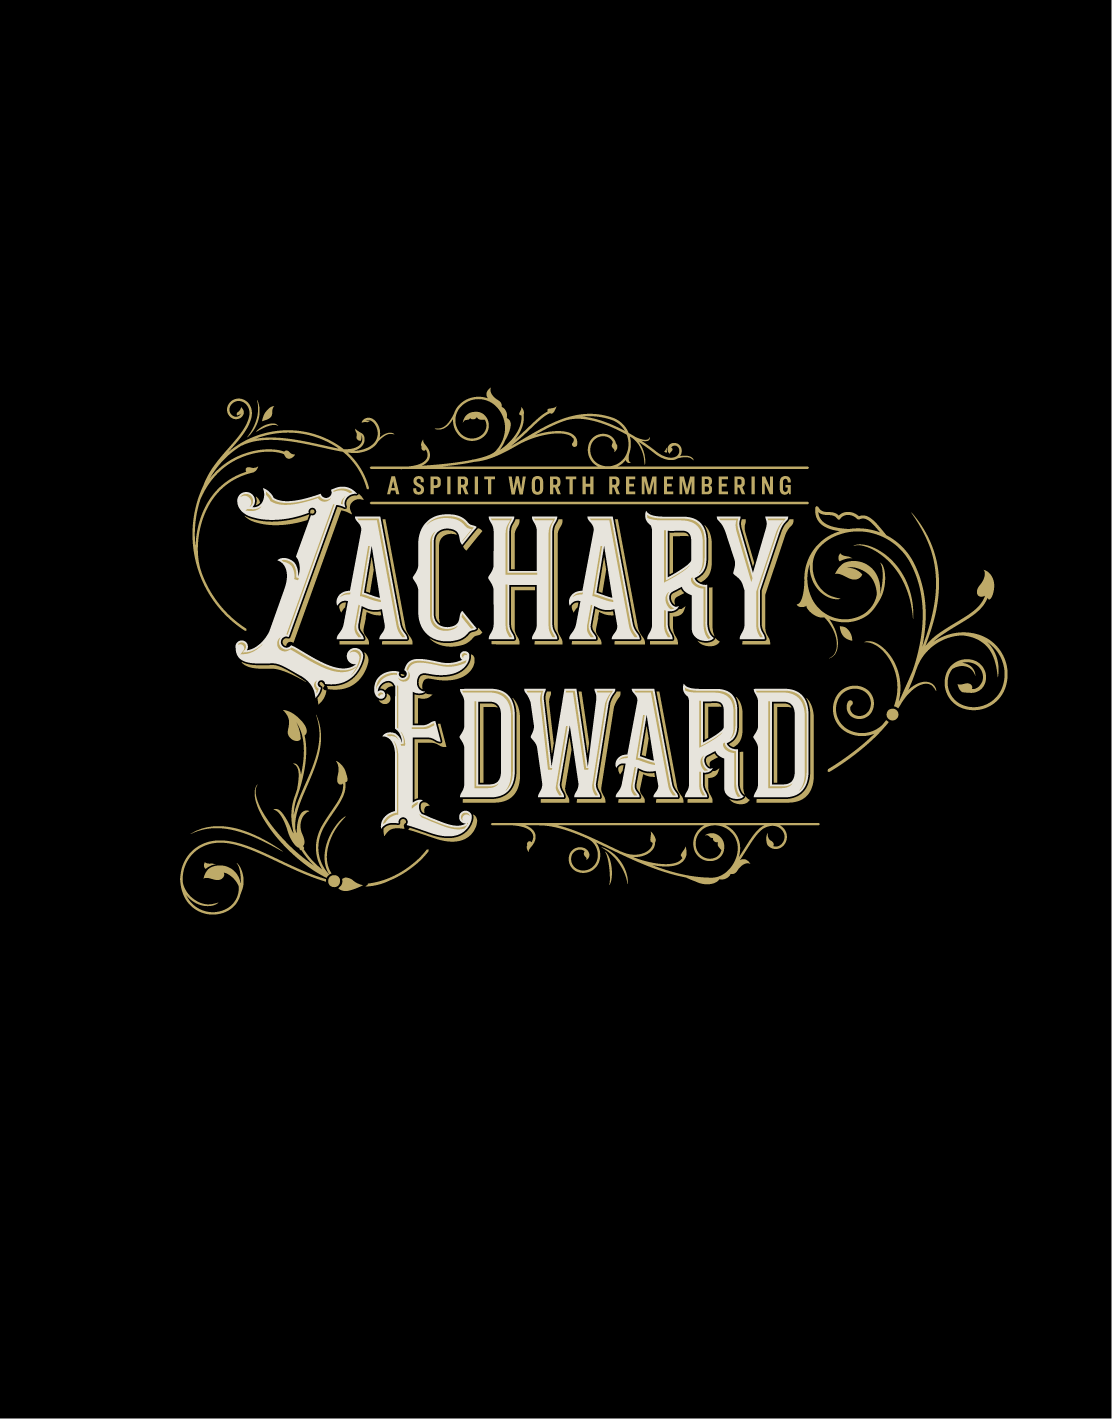 Zachary Edward Logo logo design by logo designer CF Napa Brand Design for your inspiration and for the worlds largest logo competition